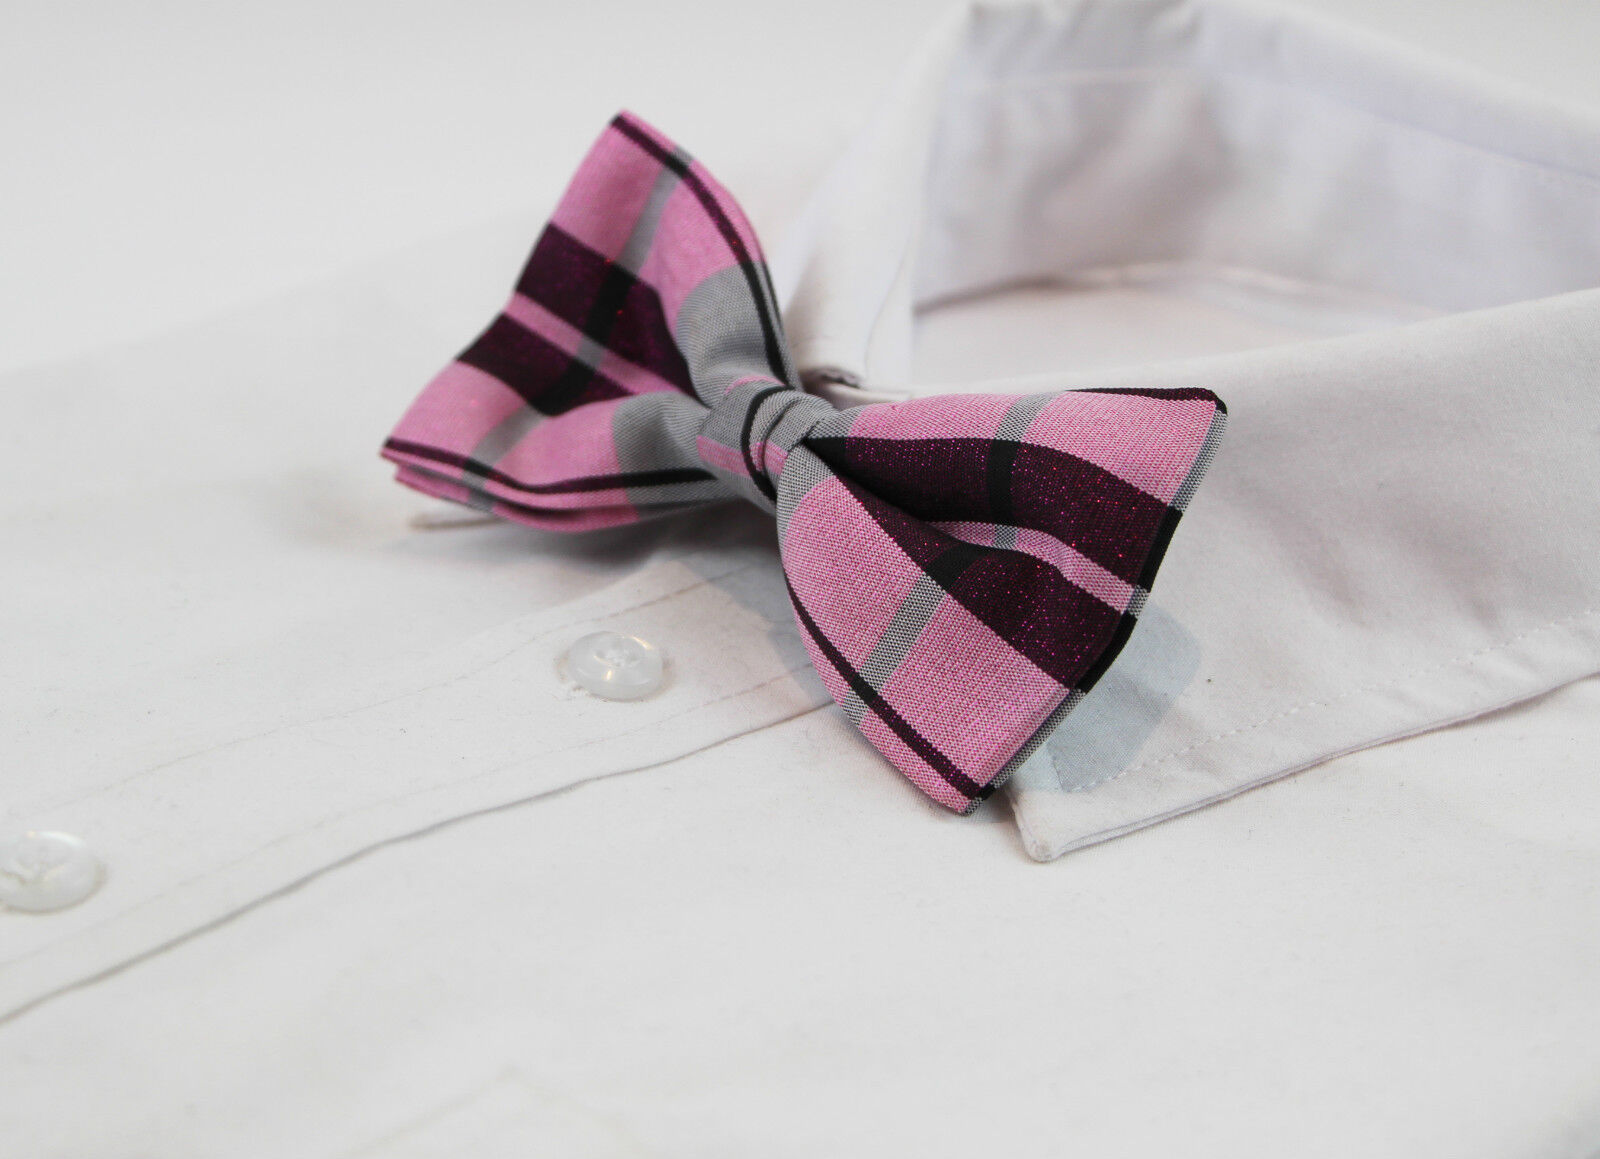 MENS VELVET MAGENTA BOW TIE Pretied Adjustable Wedding Formal Pink Purple Suede